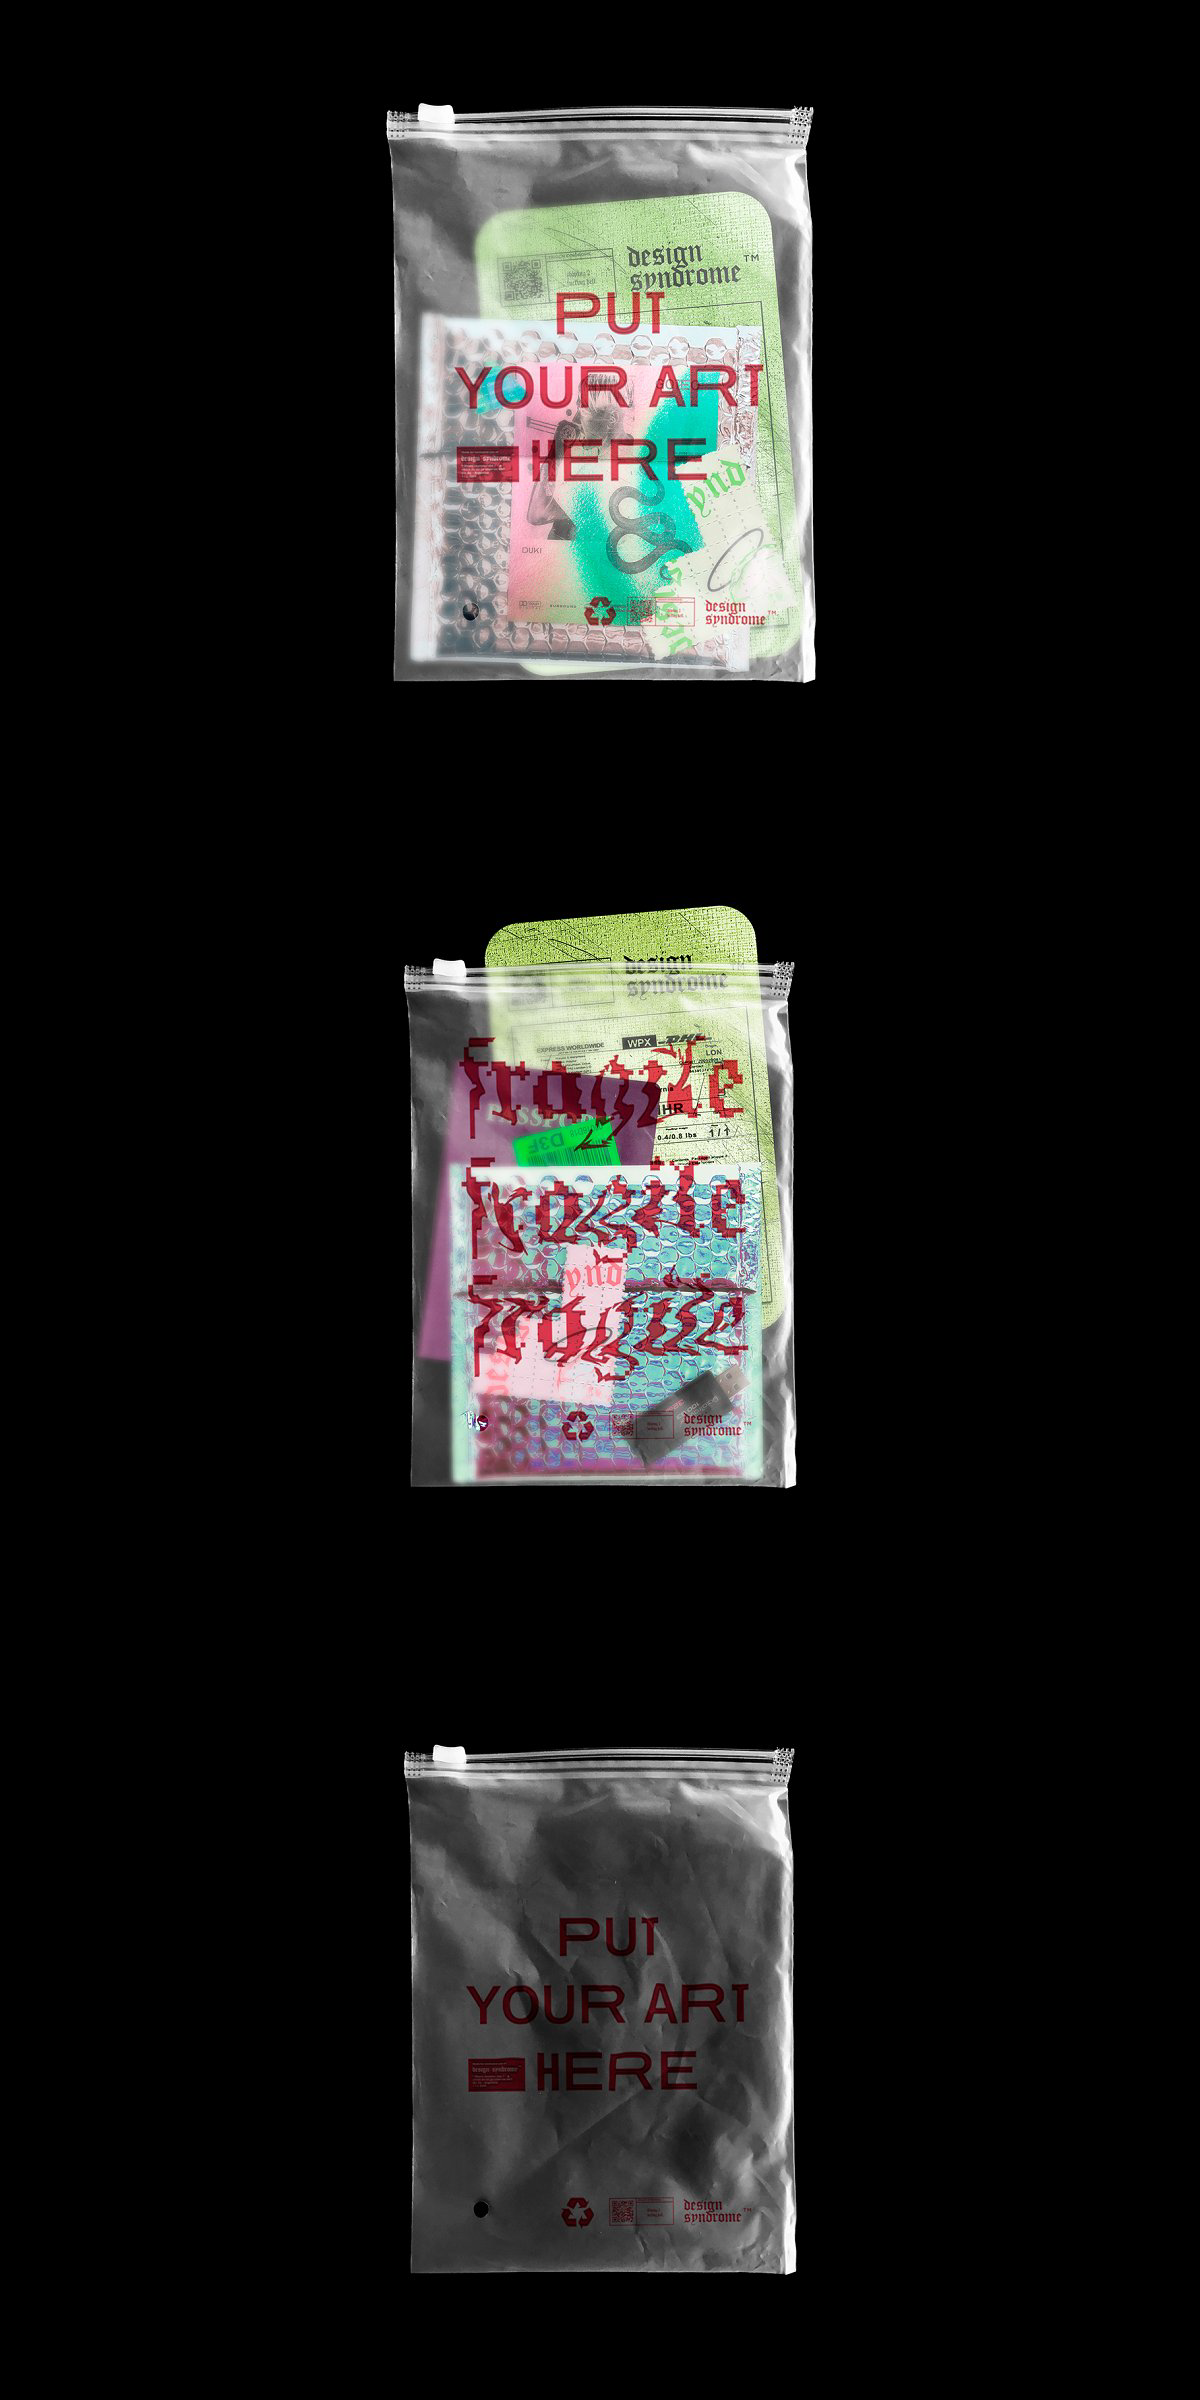 Download Translucent Plastic Bag Mockup Graphic Design Fun Zine Design Texture Graphic Design